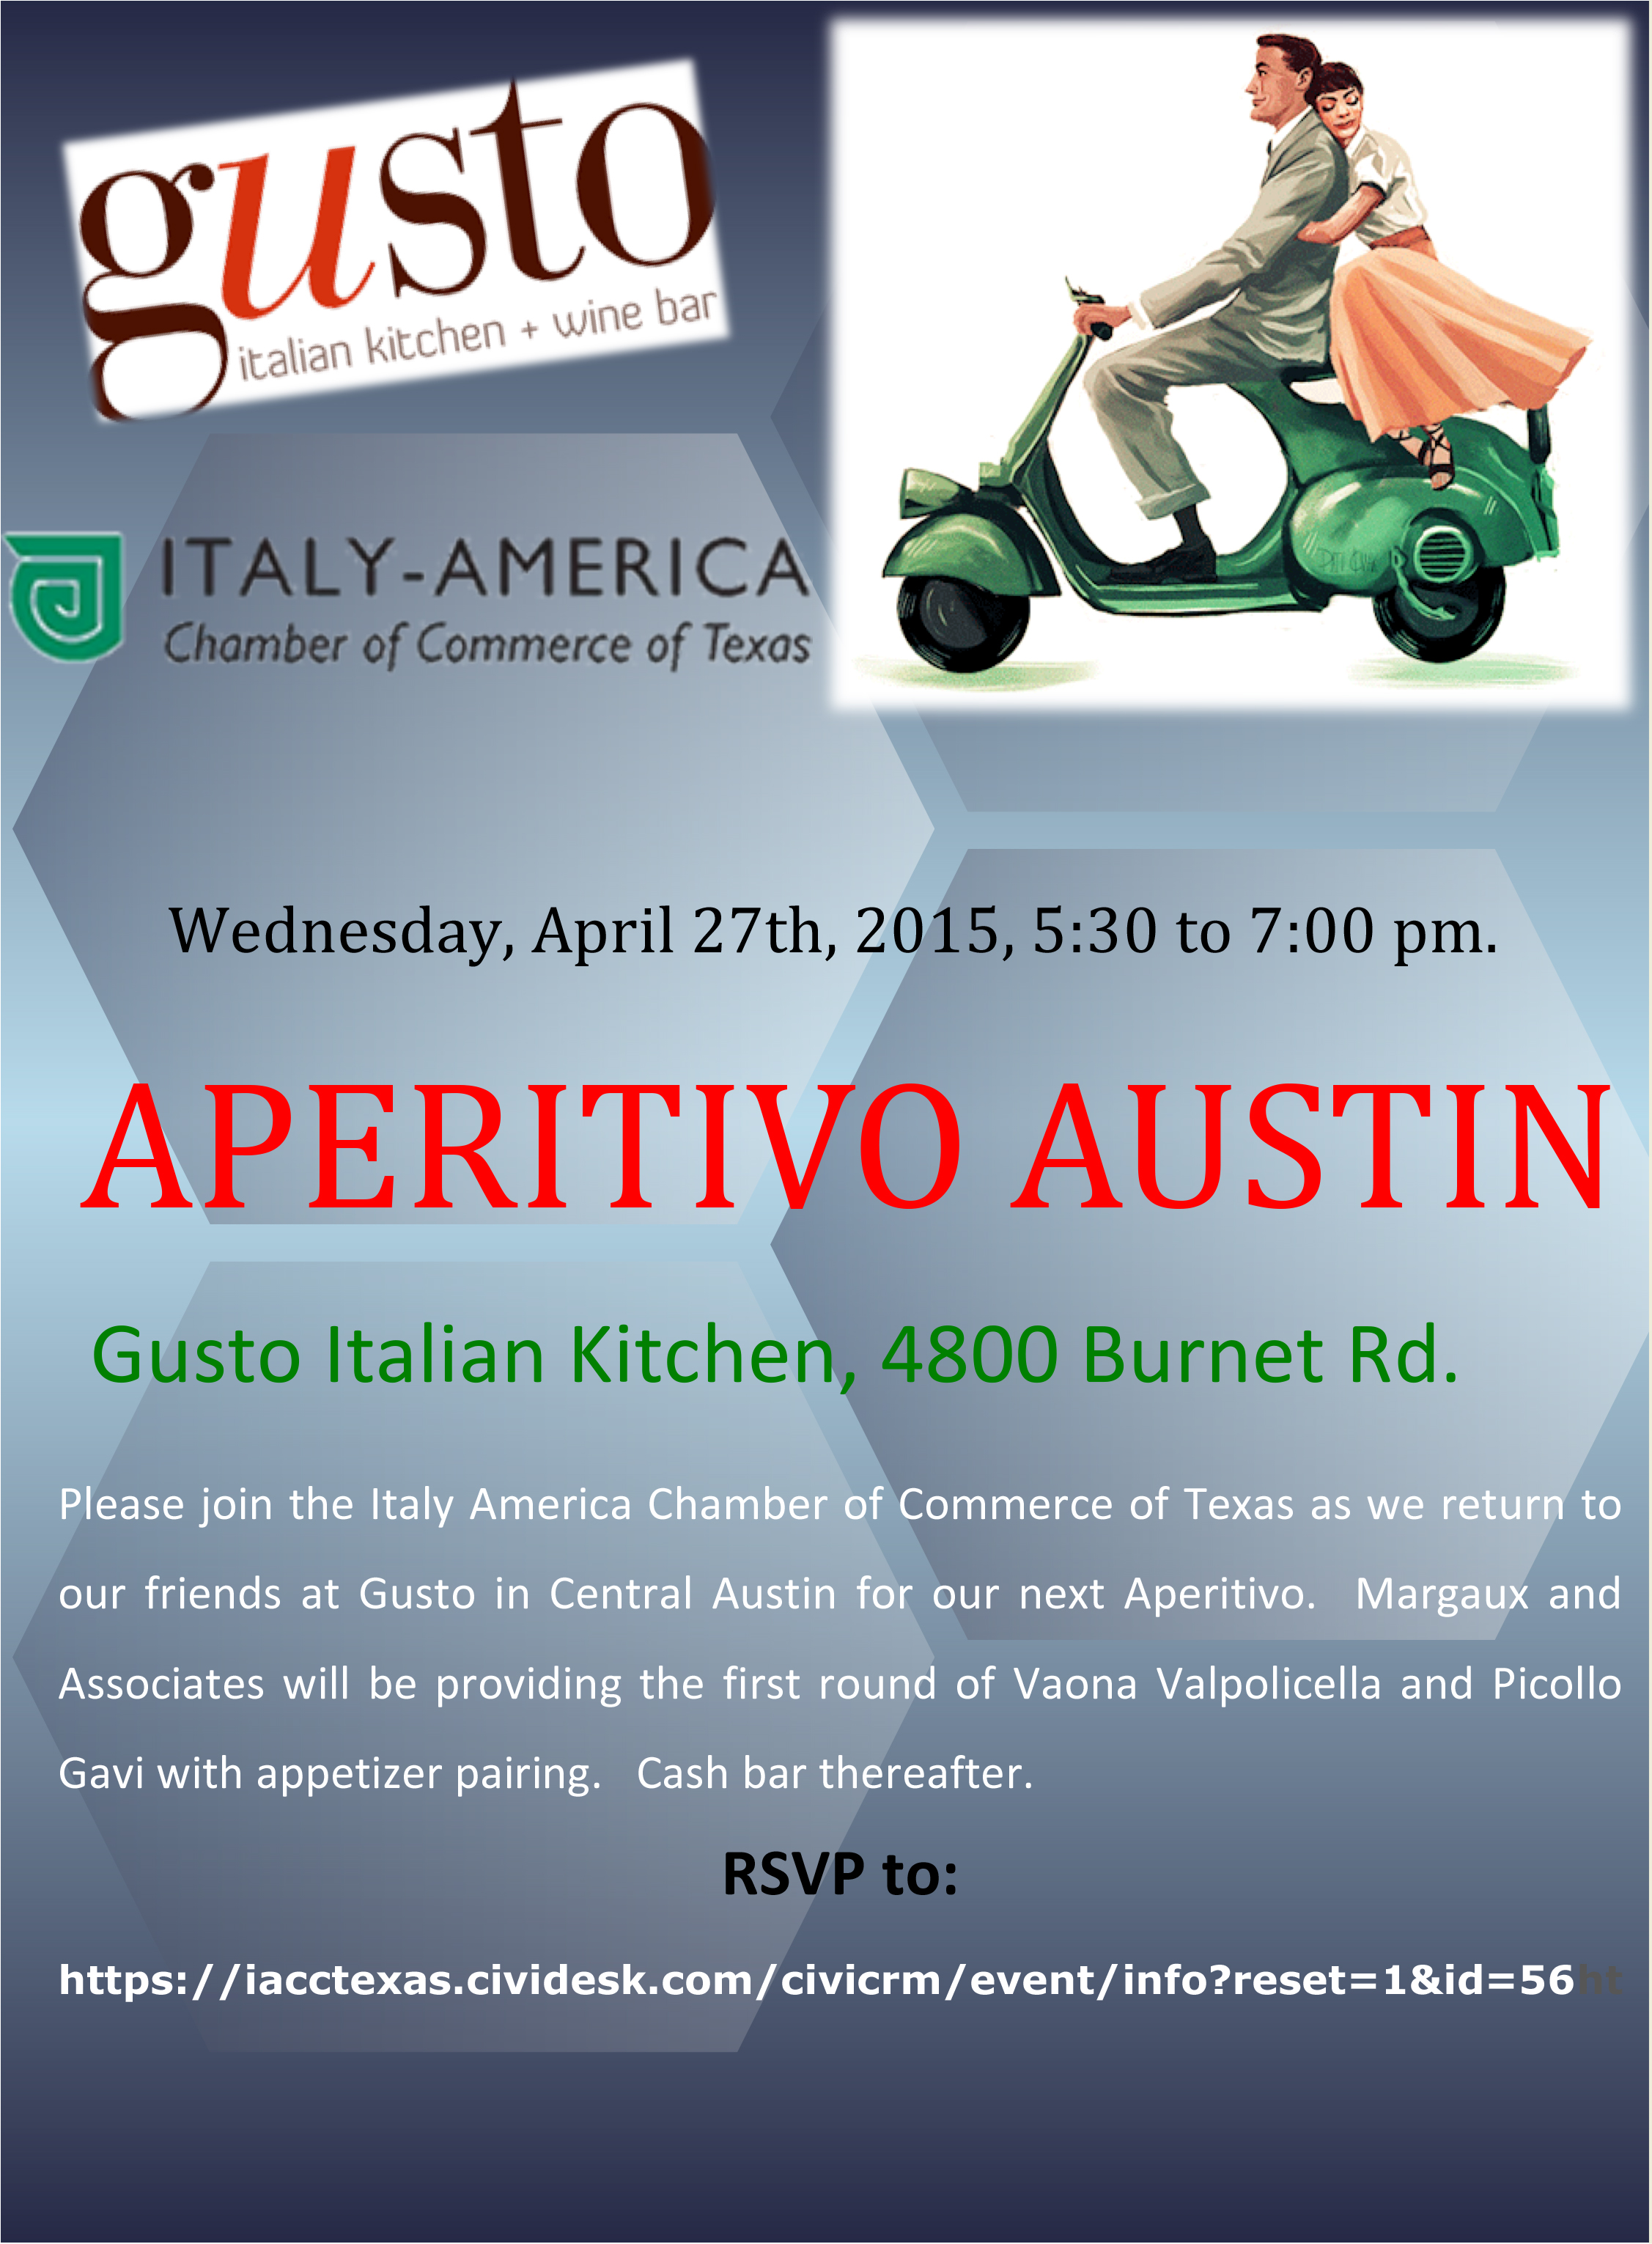 Aperitivo austin gusto italian kitchen april 27th for Gusto italian kitchen